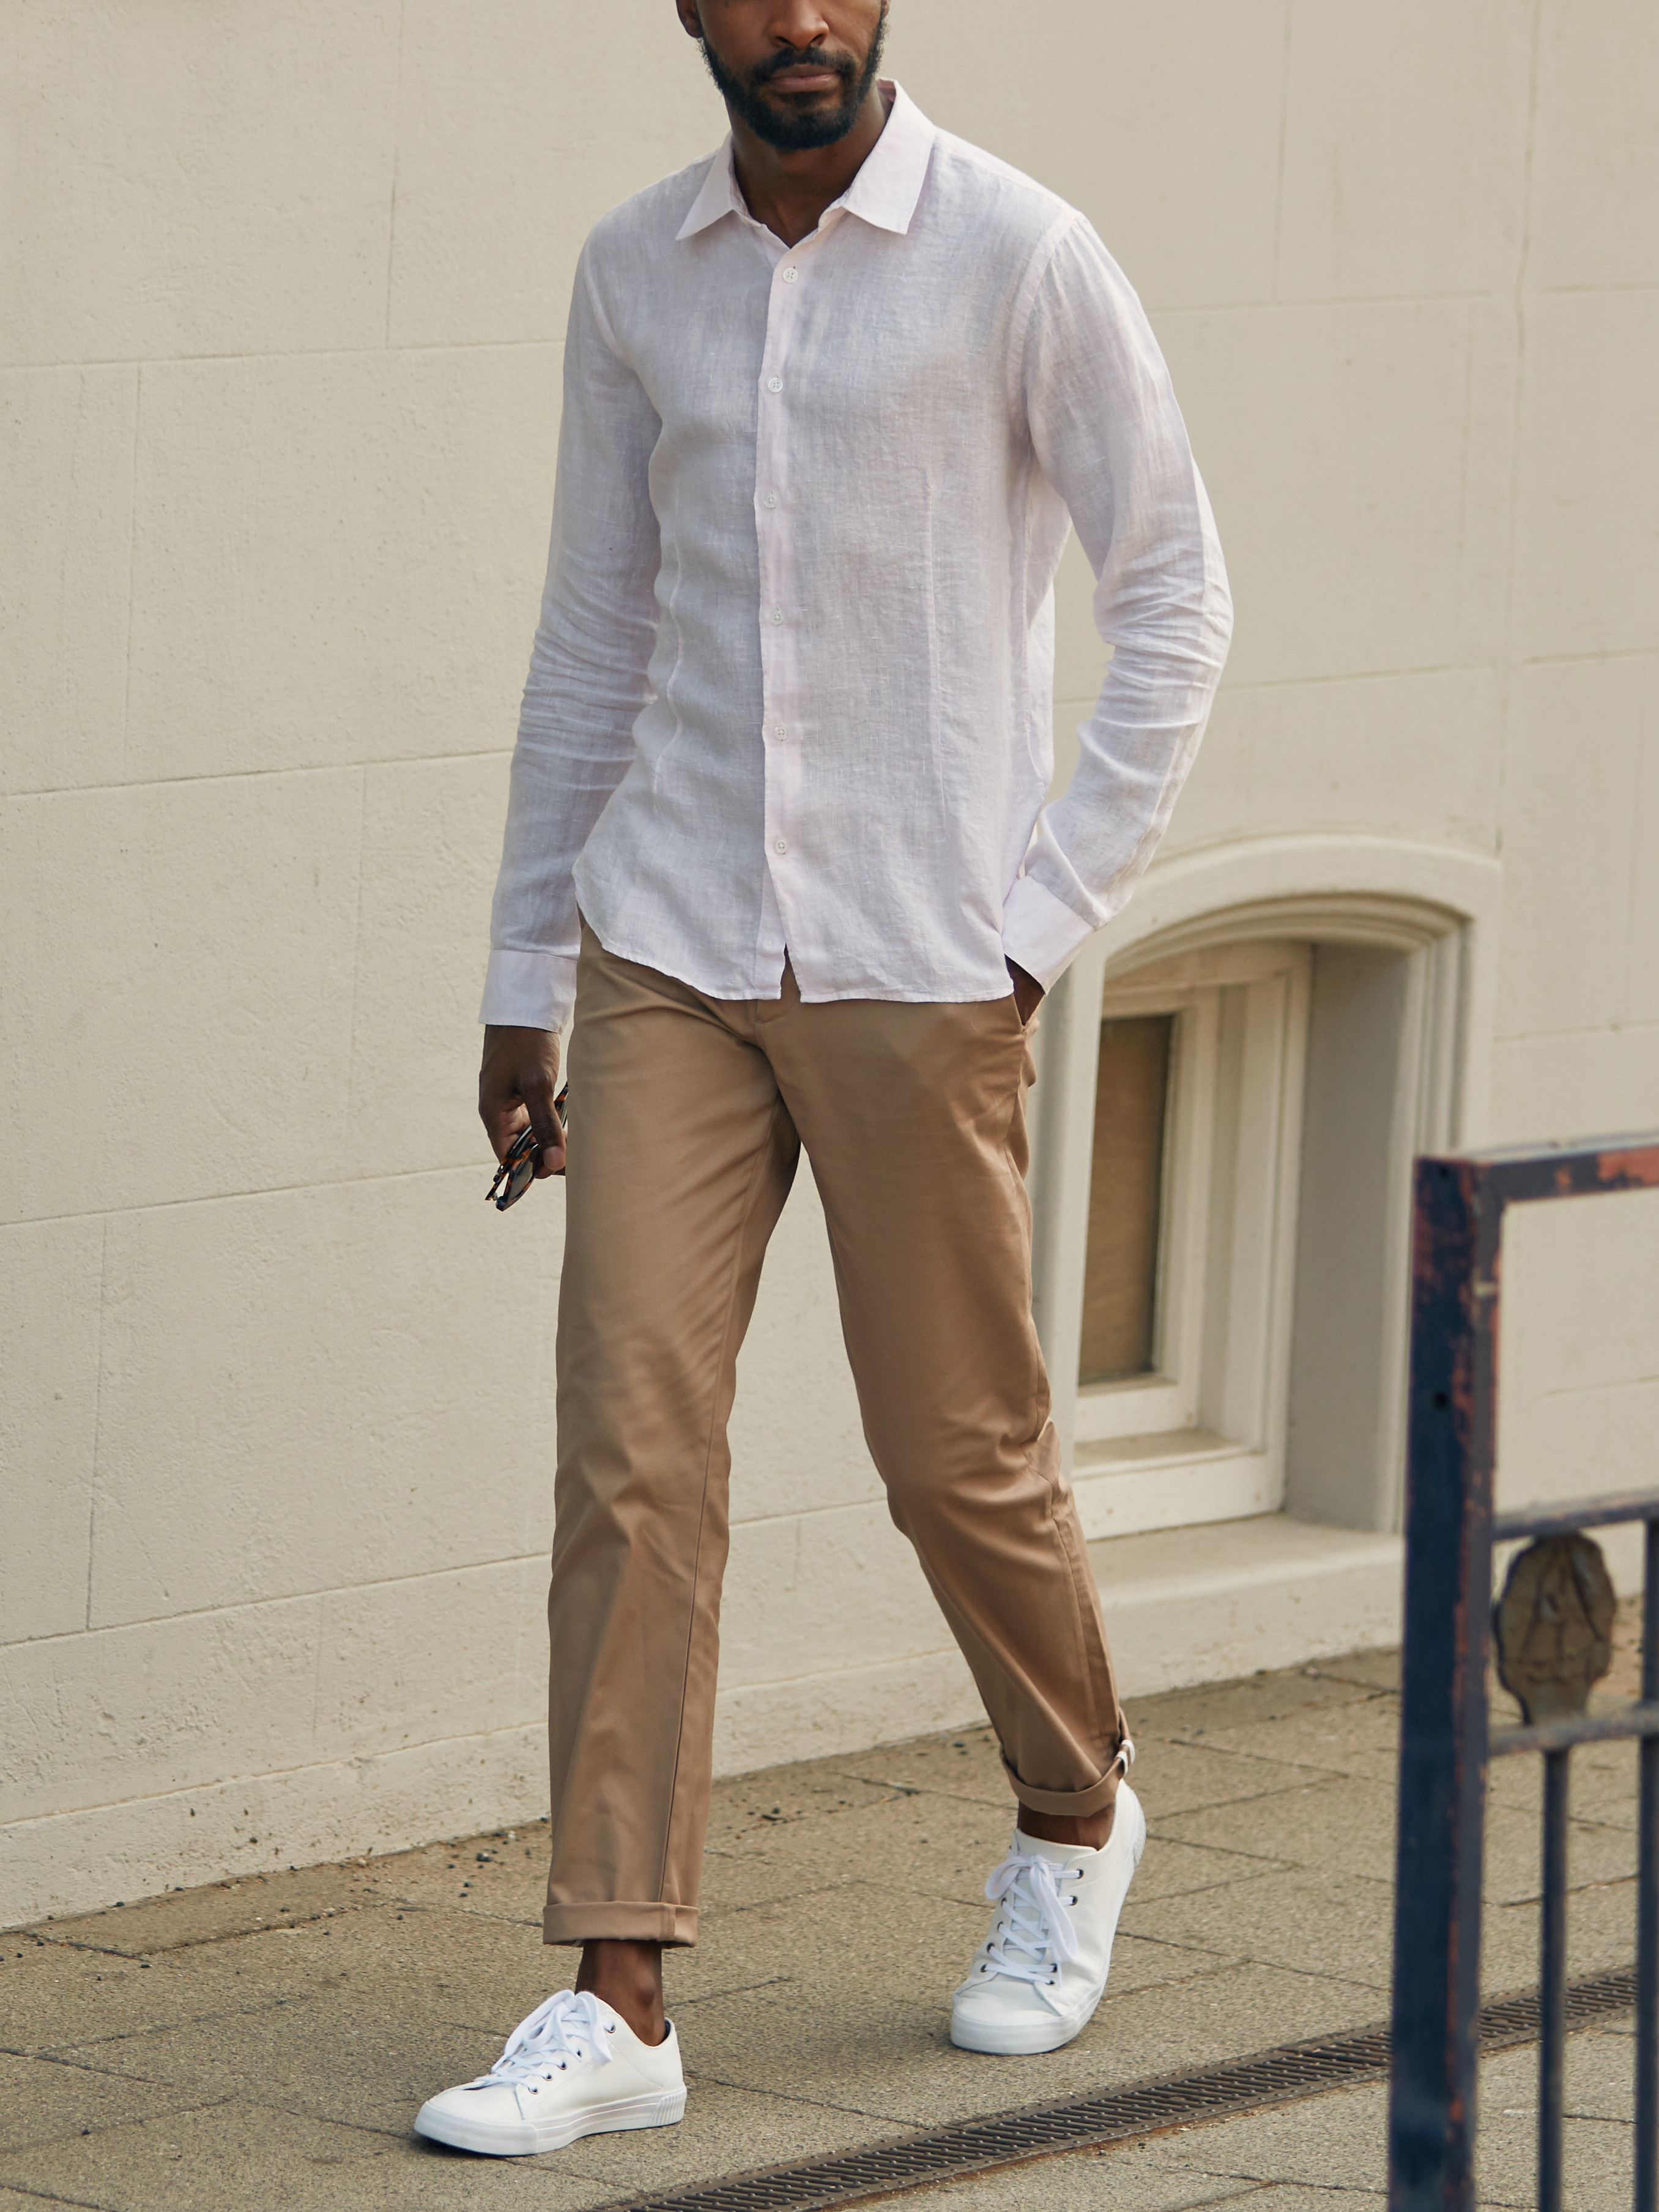 Men's outfit idea for 2021 with white linen shirt, stone chinos, white trainers. Suitable for spring and summer.